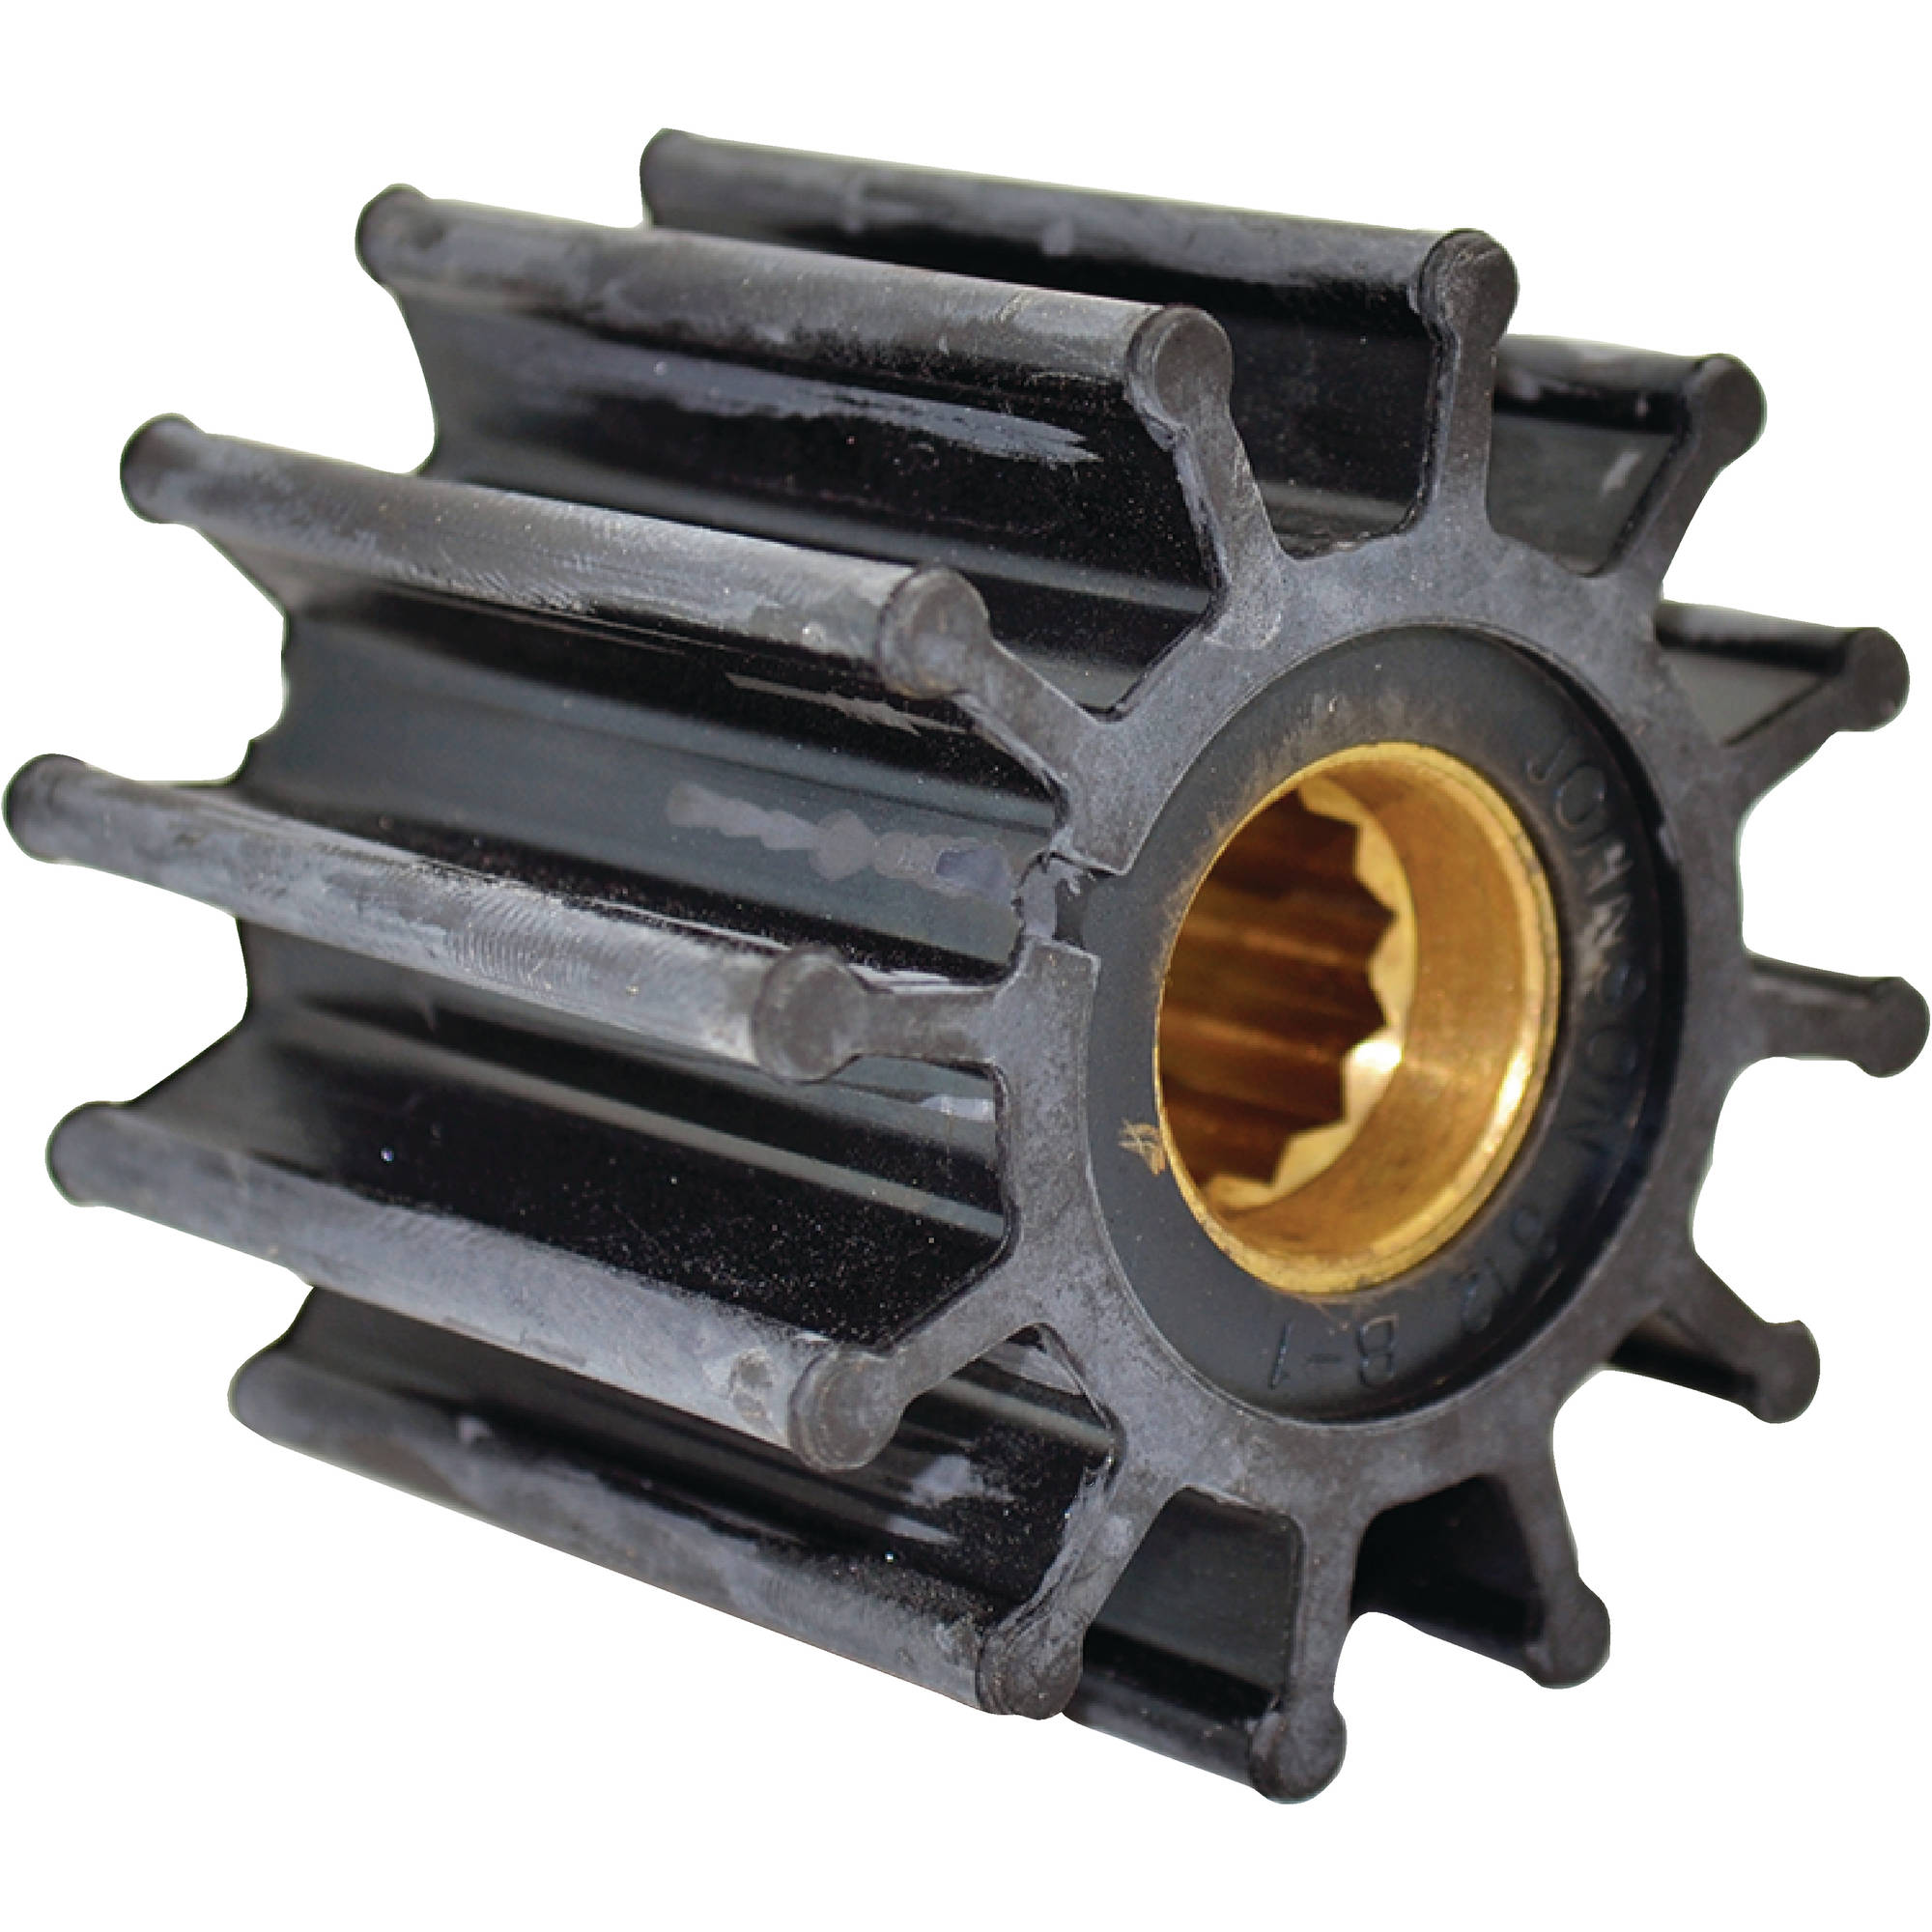 Johnson Pump 09-812B-1 MC97 Impeller For F6 Pumps Replaces Jabsco 13554-0001